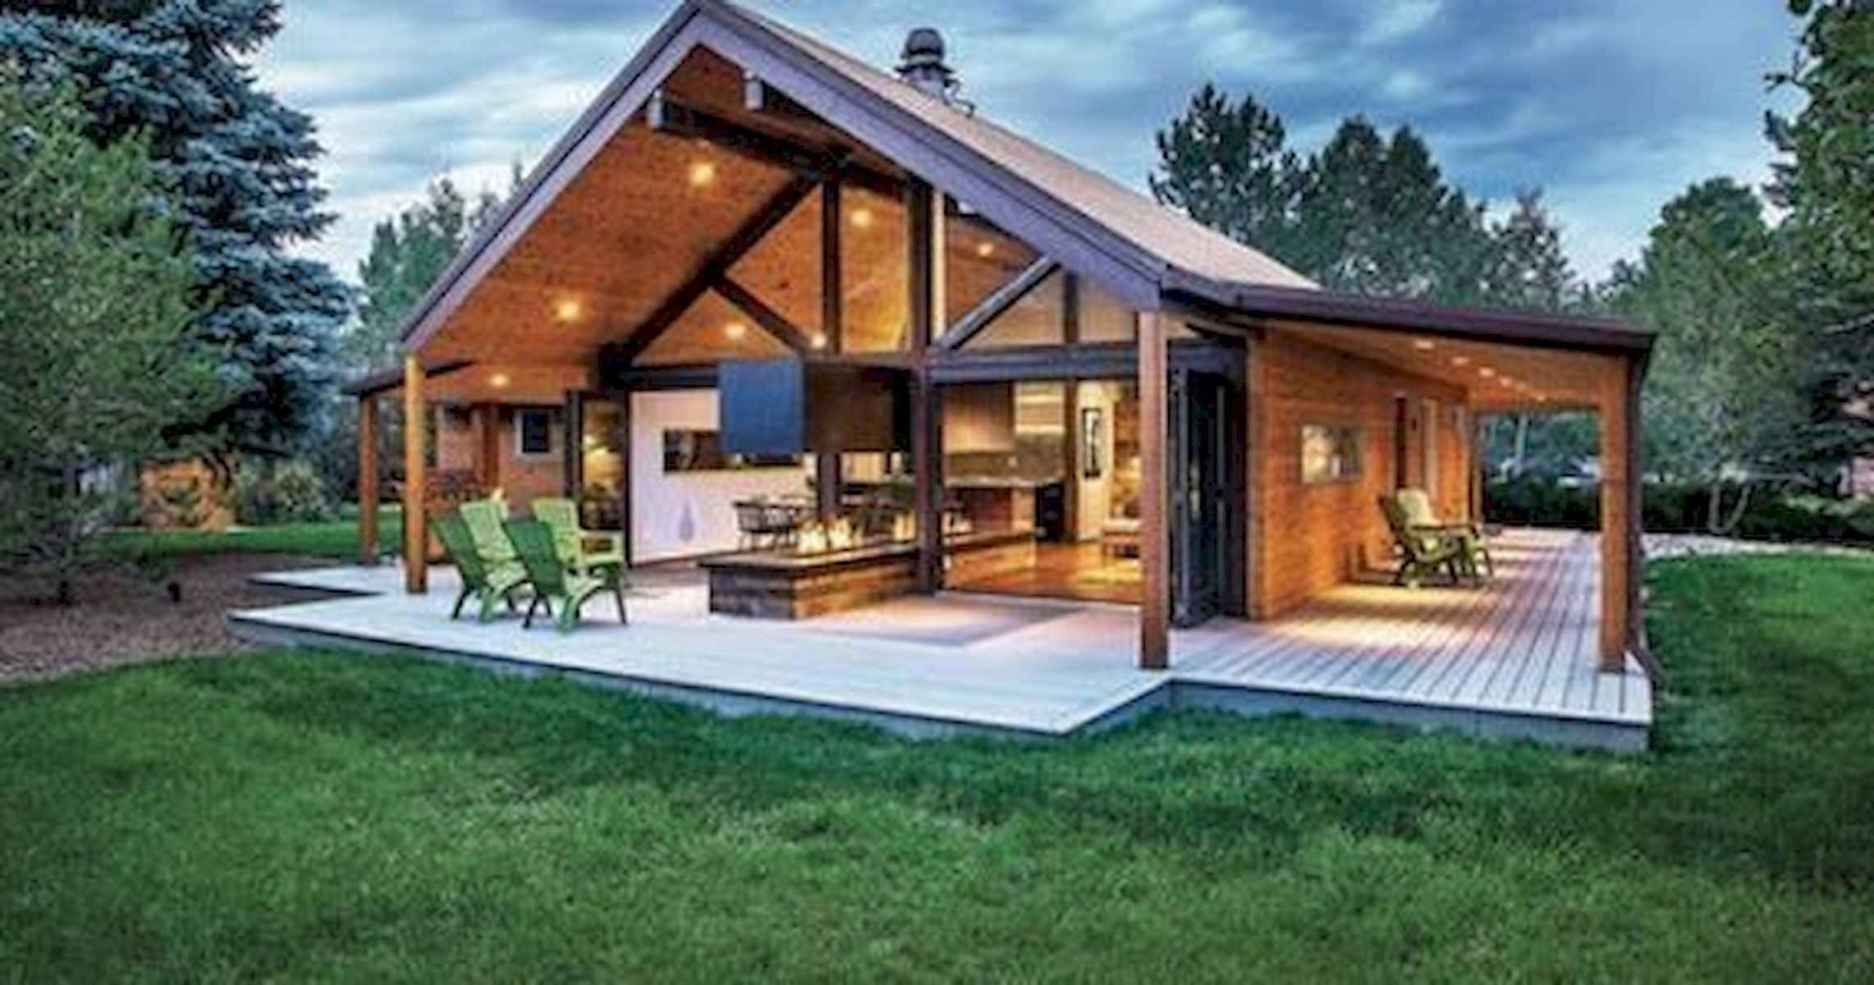 40 Amazing Craftsman Style Homes Design Ideas (8 (With